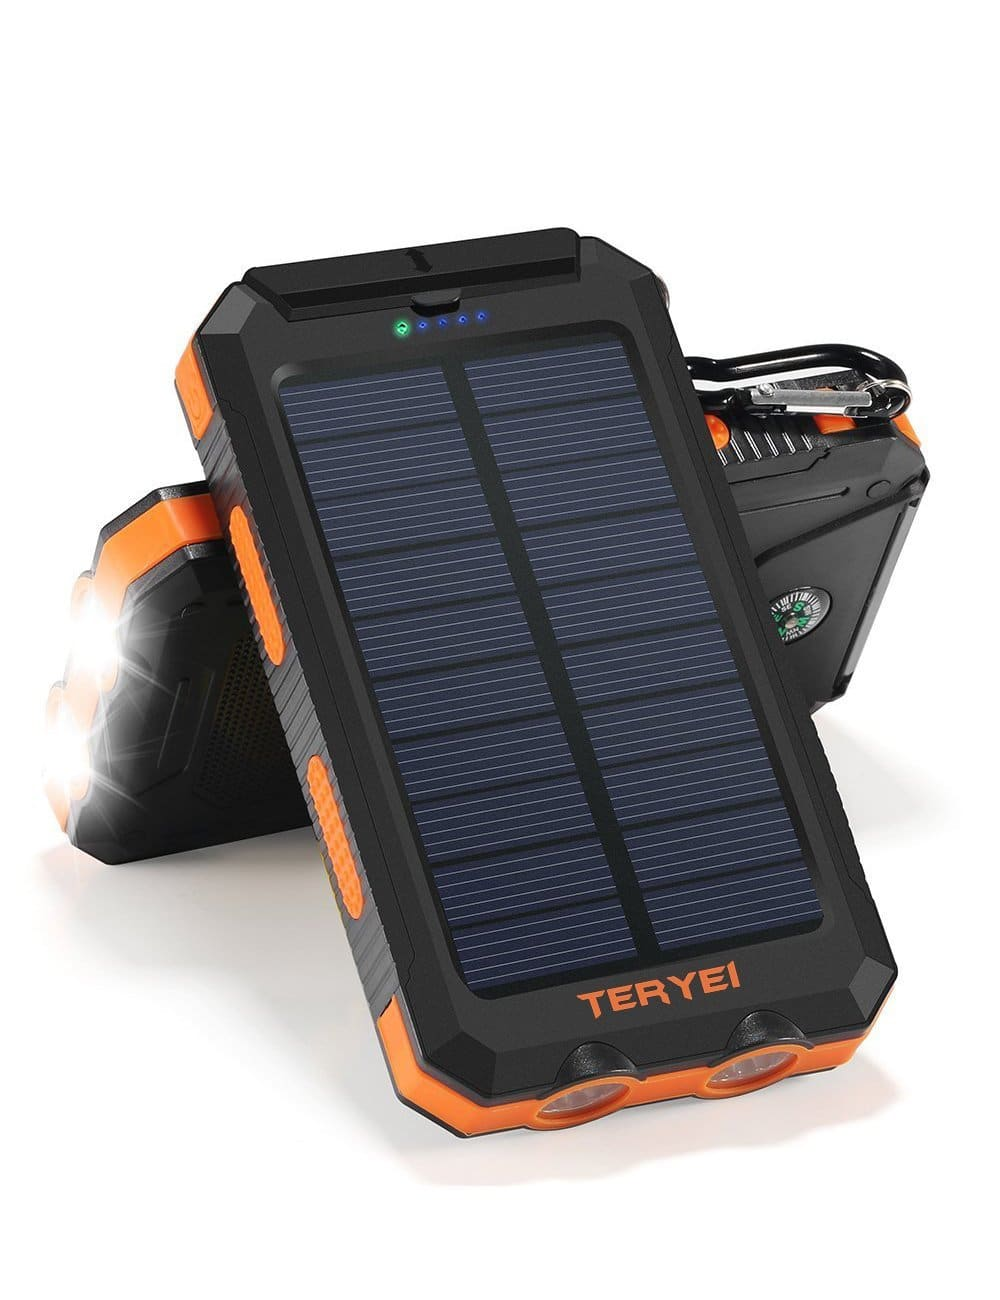 Teryei Solar Power Bank